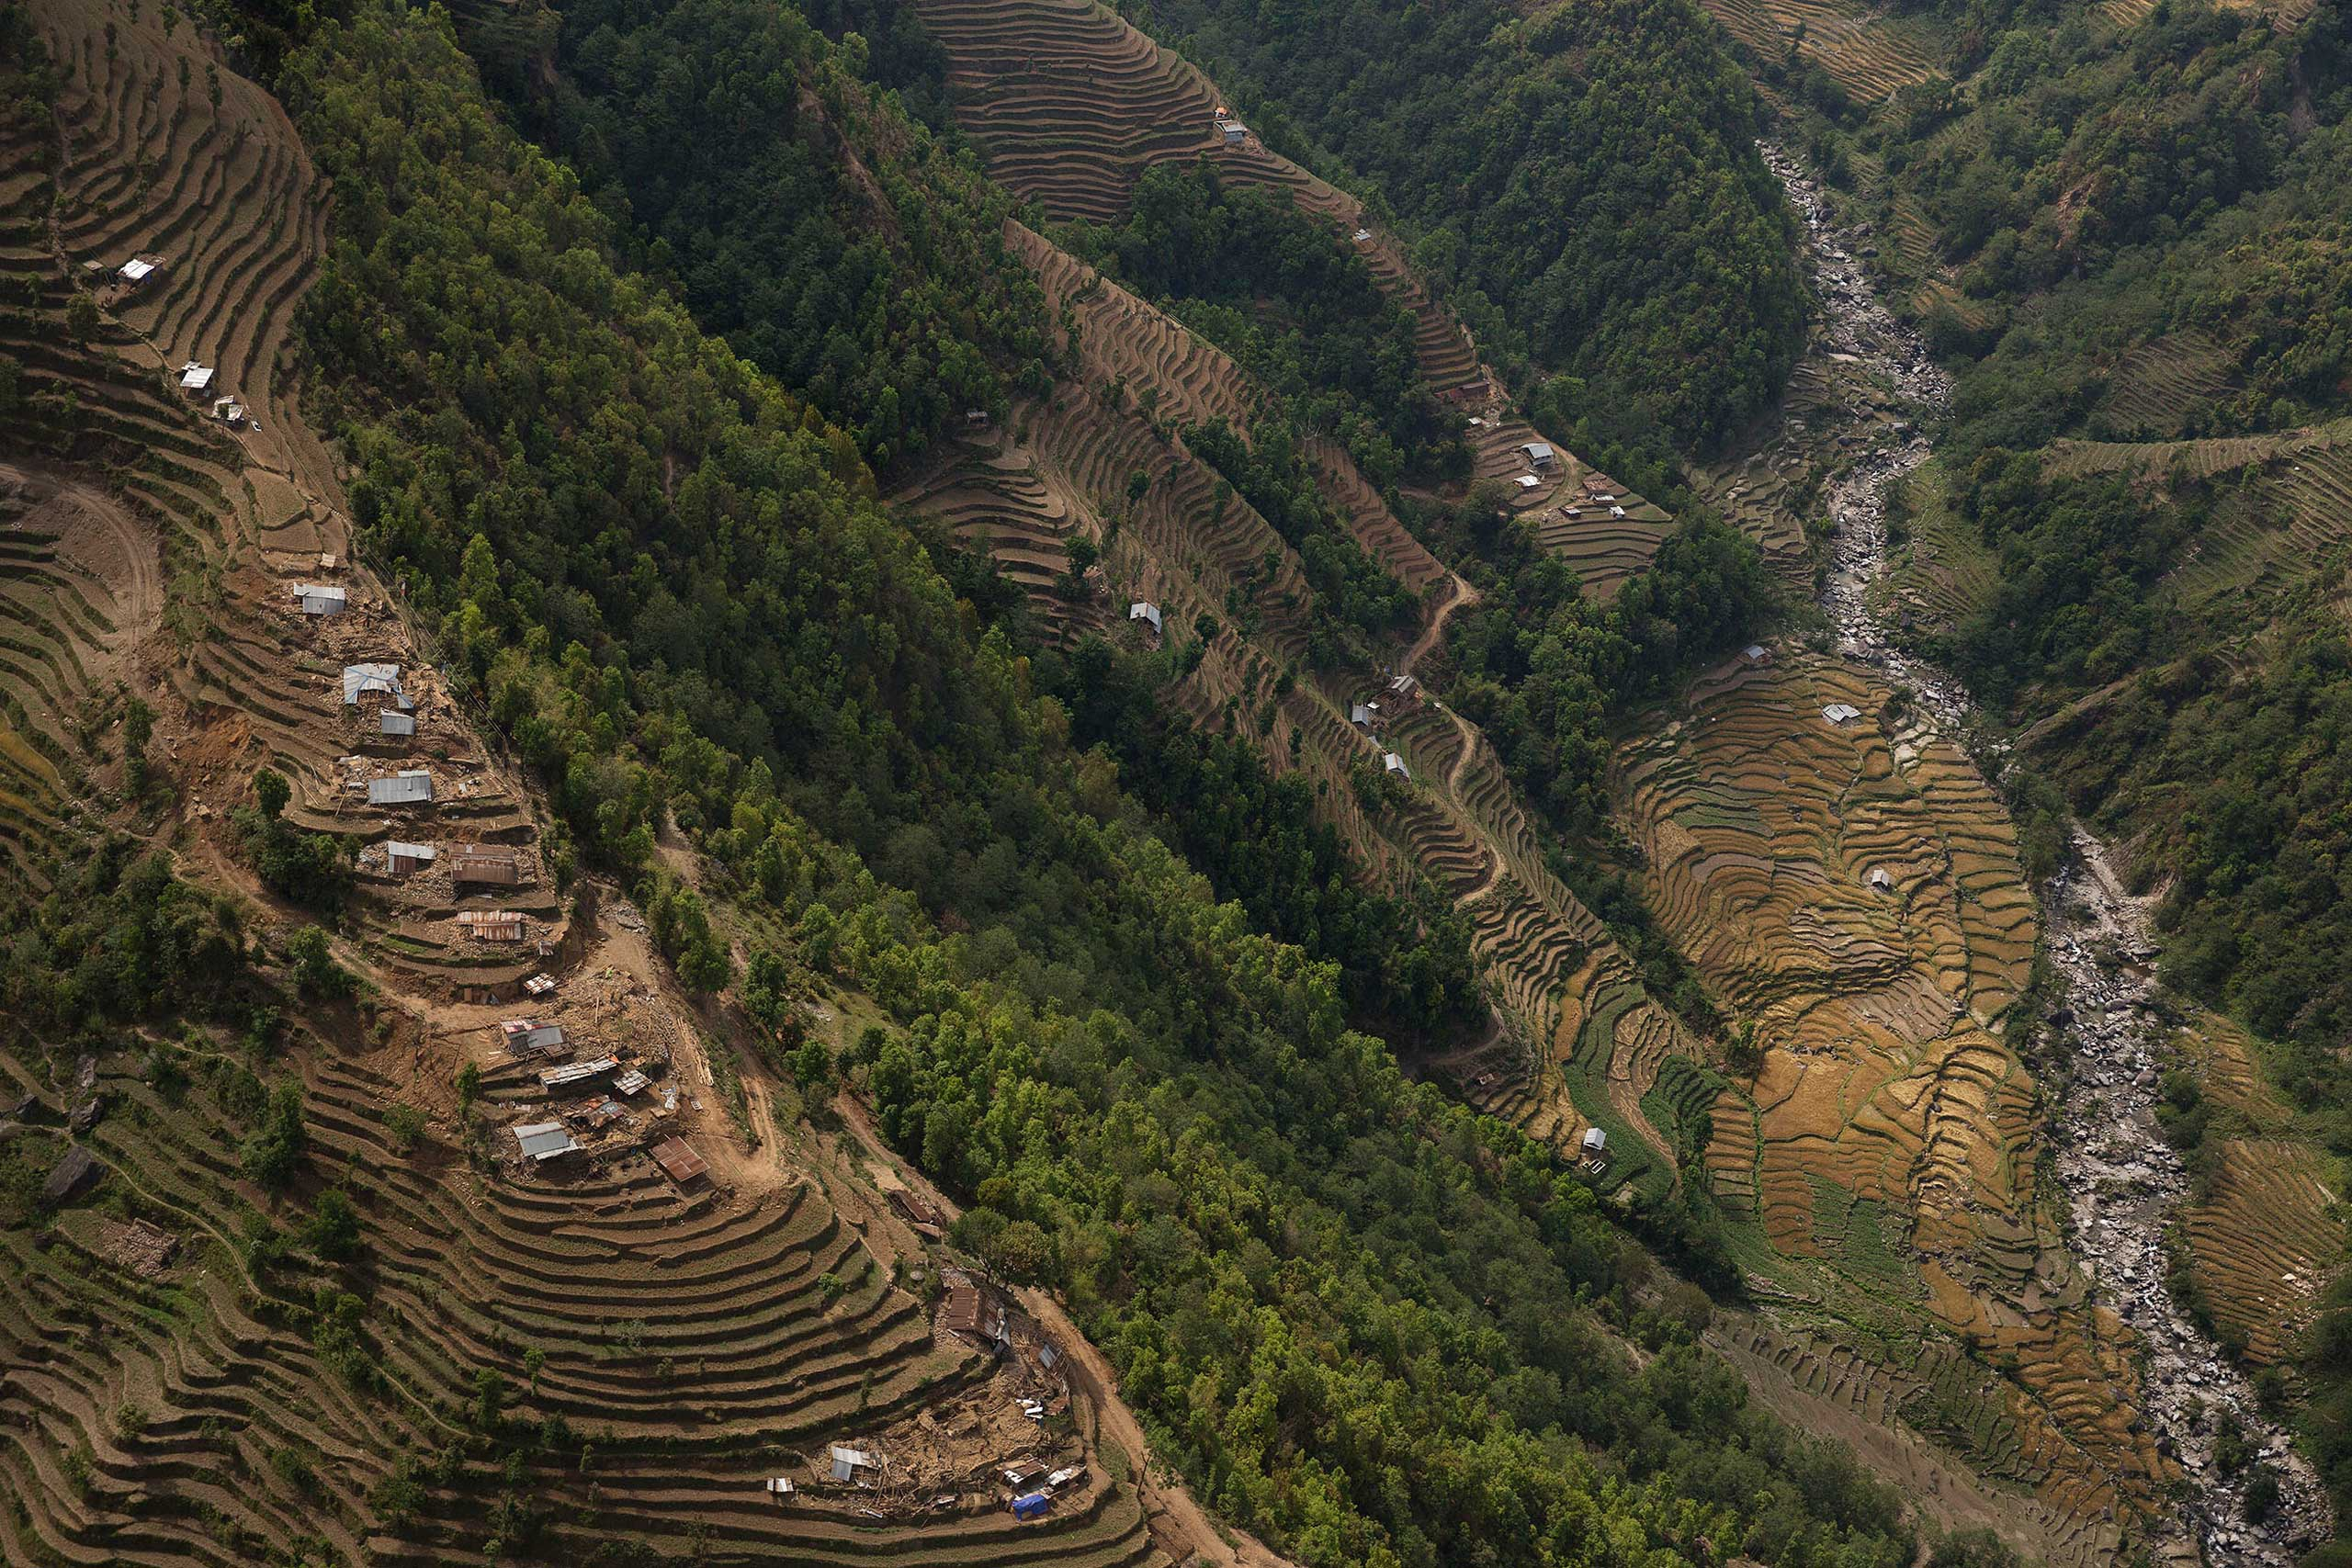 Destroyed farming villages are seen from a helicopter during an Indian Army relief mission to Nepal's remote Nuwakot District, April 30, 2015.